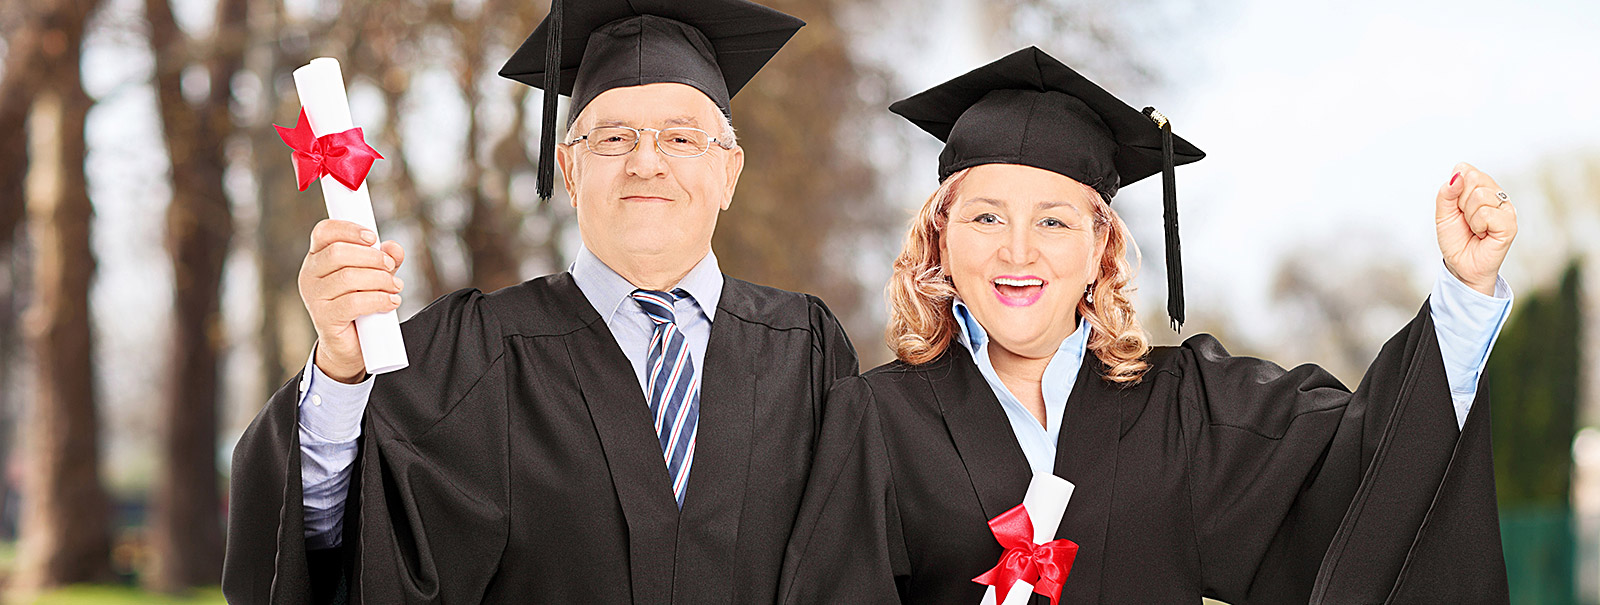 adult students holding diploma